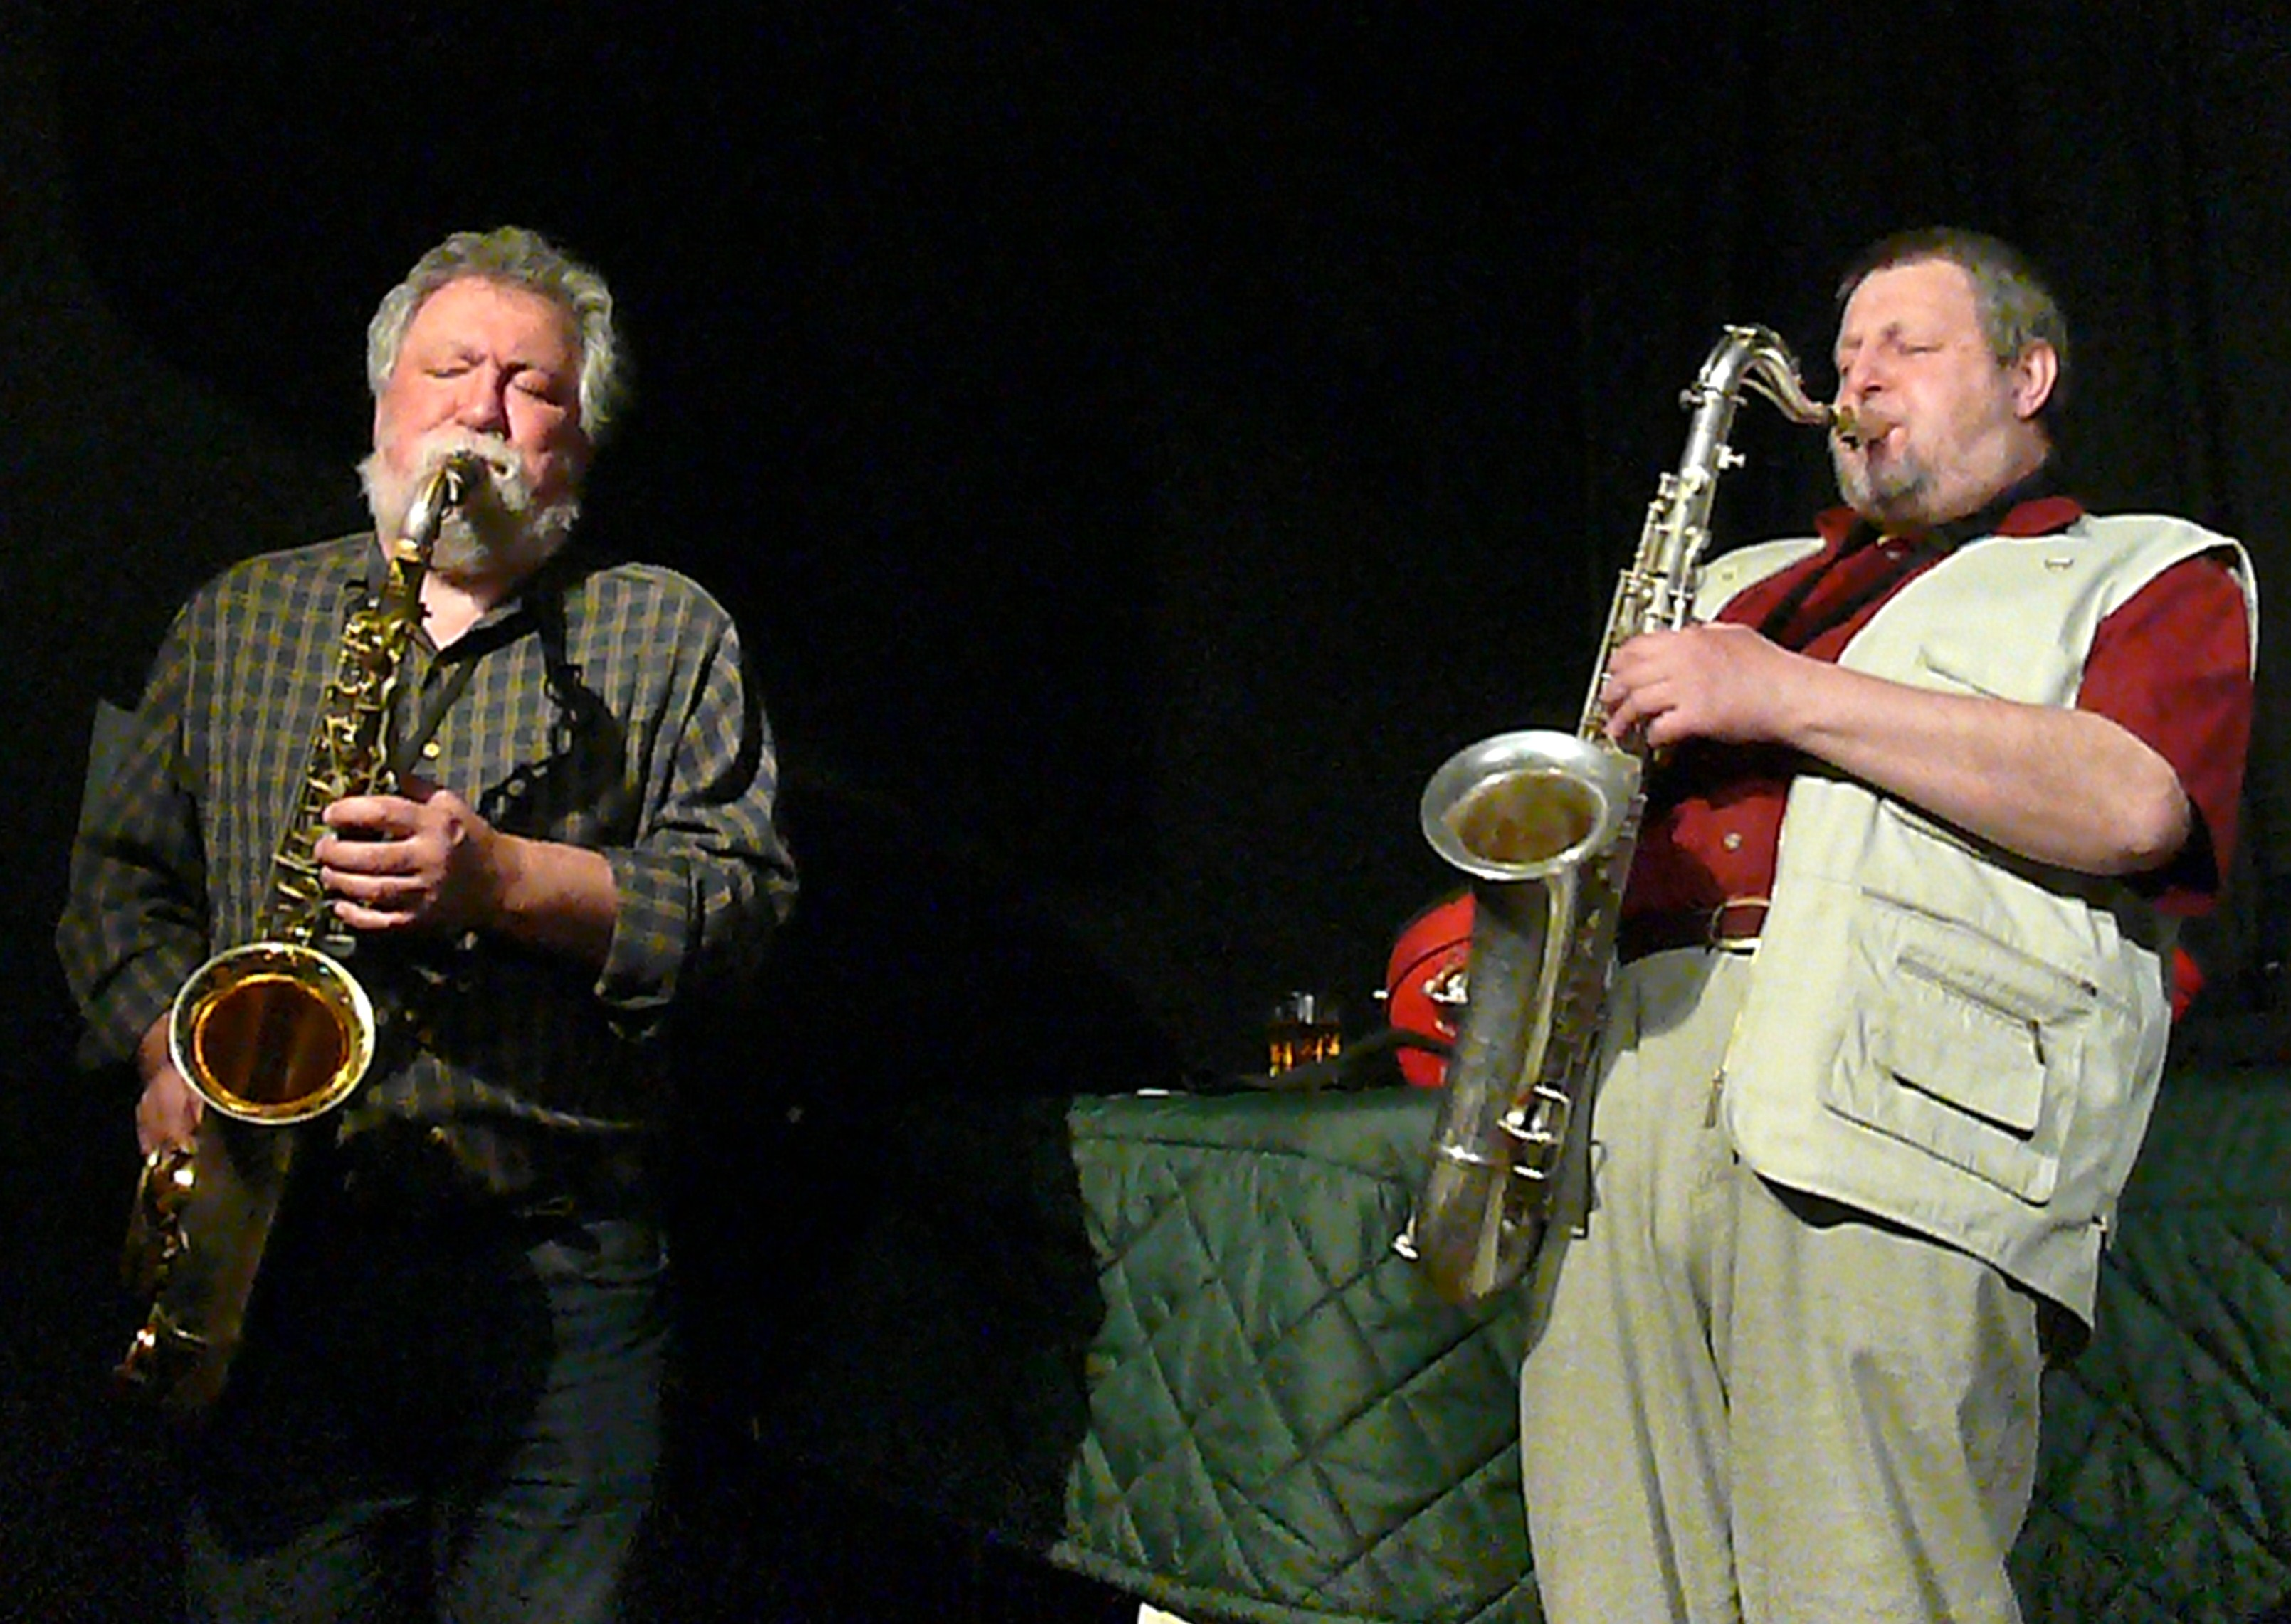 Evan Parker and Paul Dunmall at the Vortex, London, February 2010